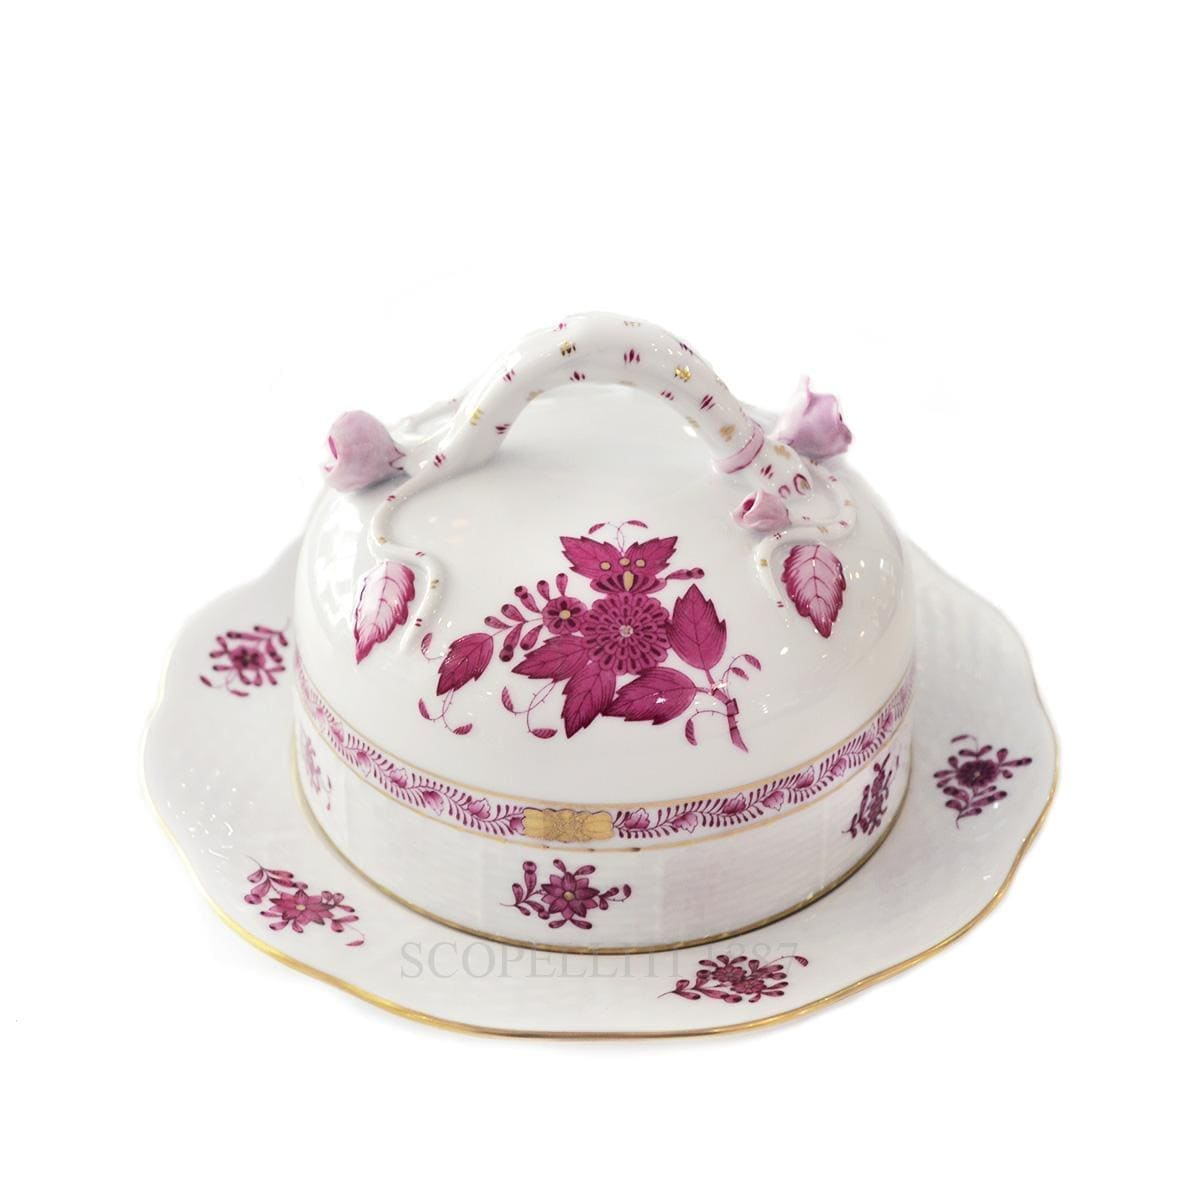 herend porcelain apponyi butter dish handpainted pink